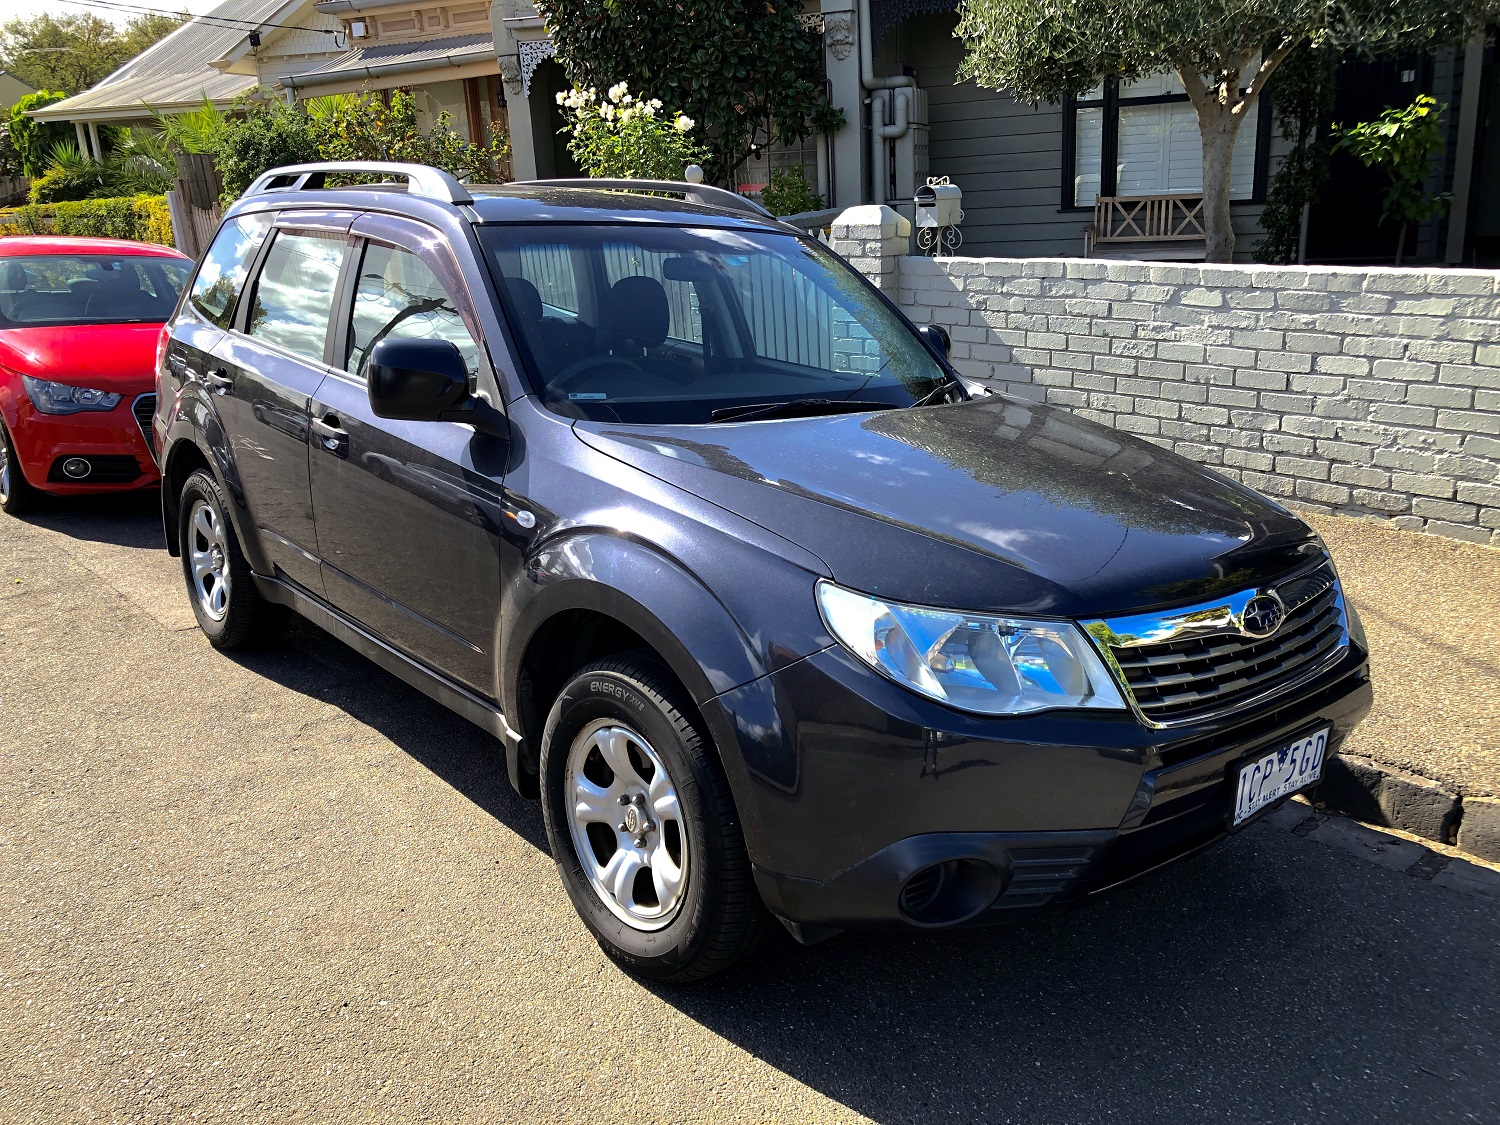 Picture of Corey's 2010 Subaru Forester